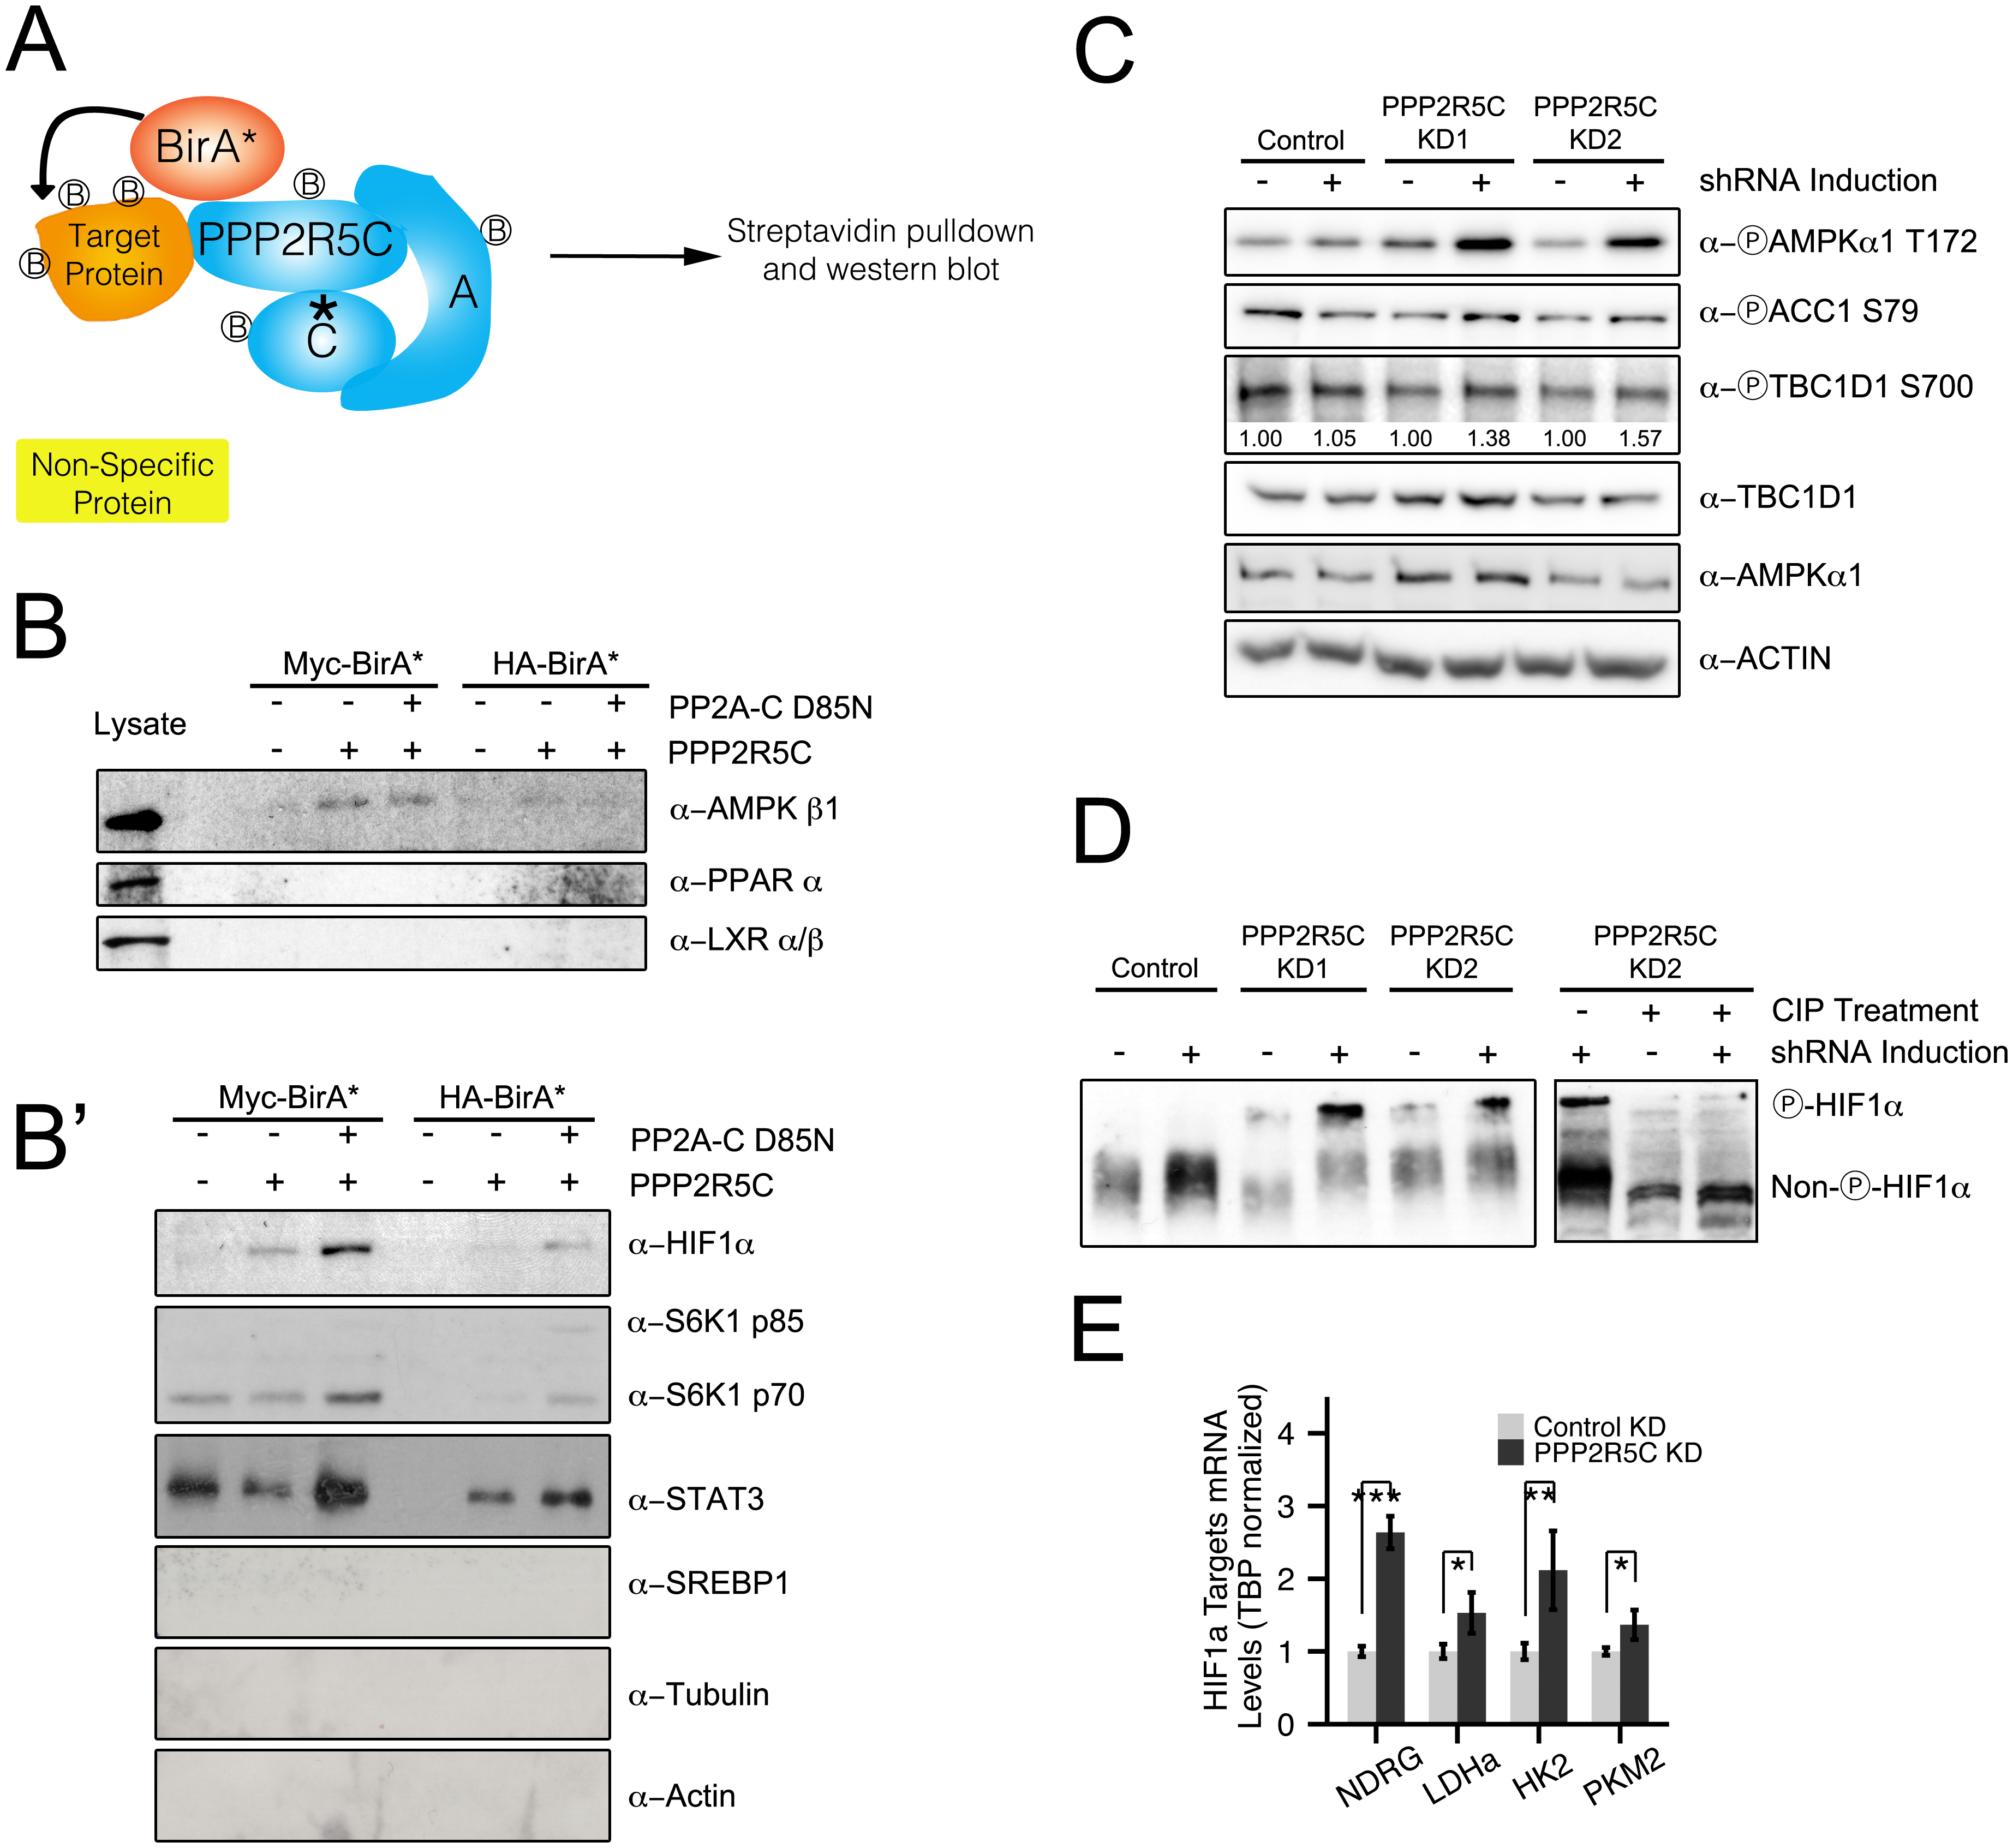 PPP2R5C regulates AMPK and HIF1α.